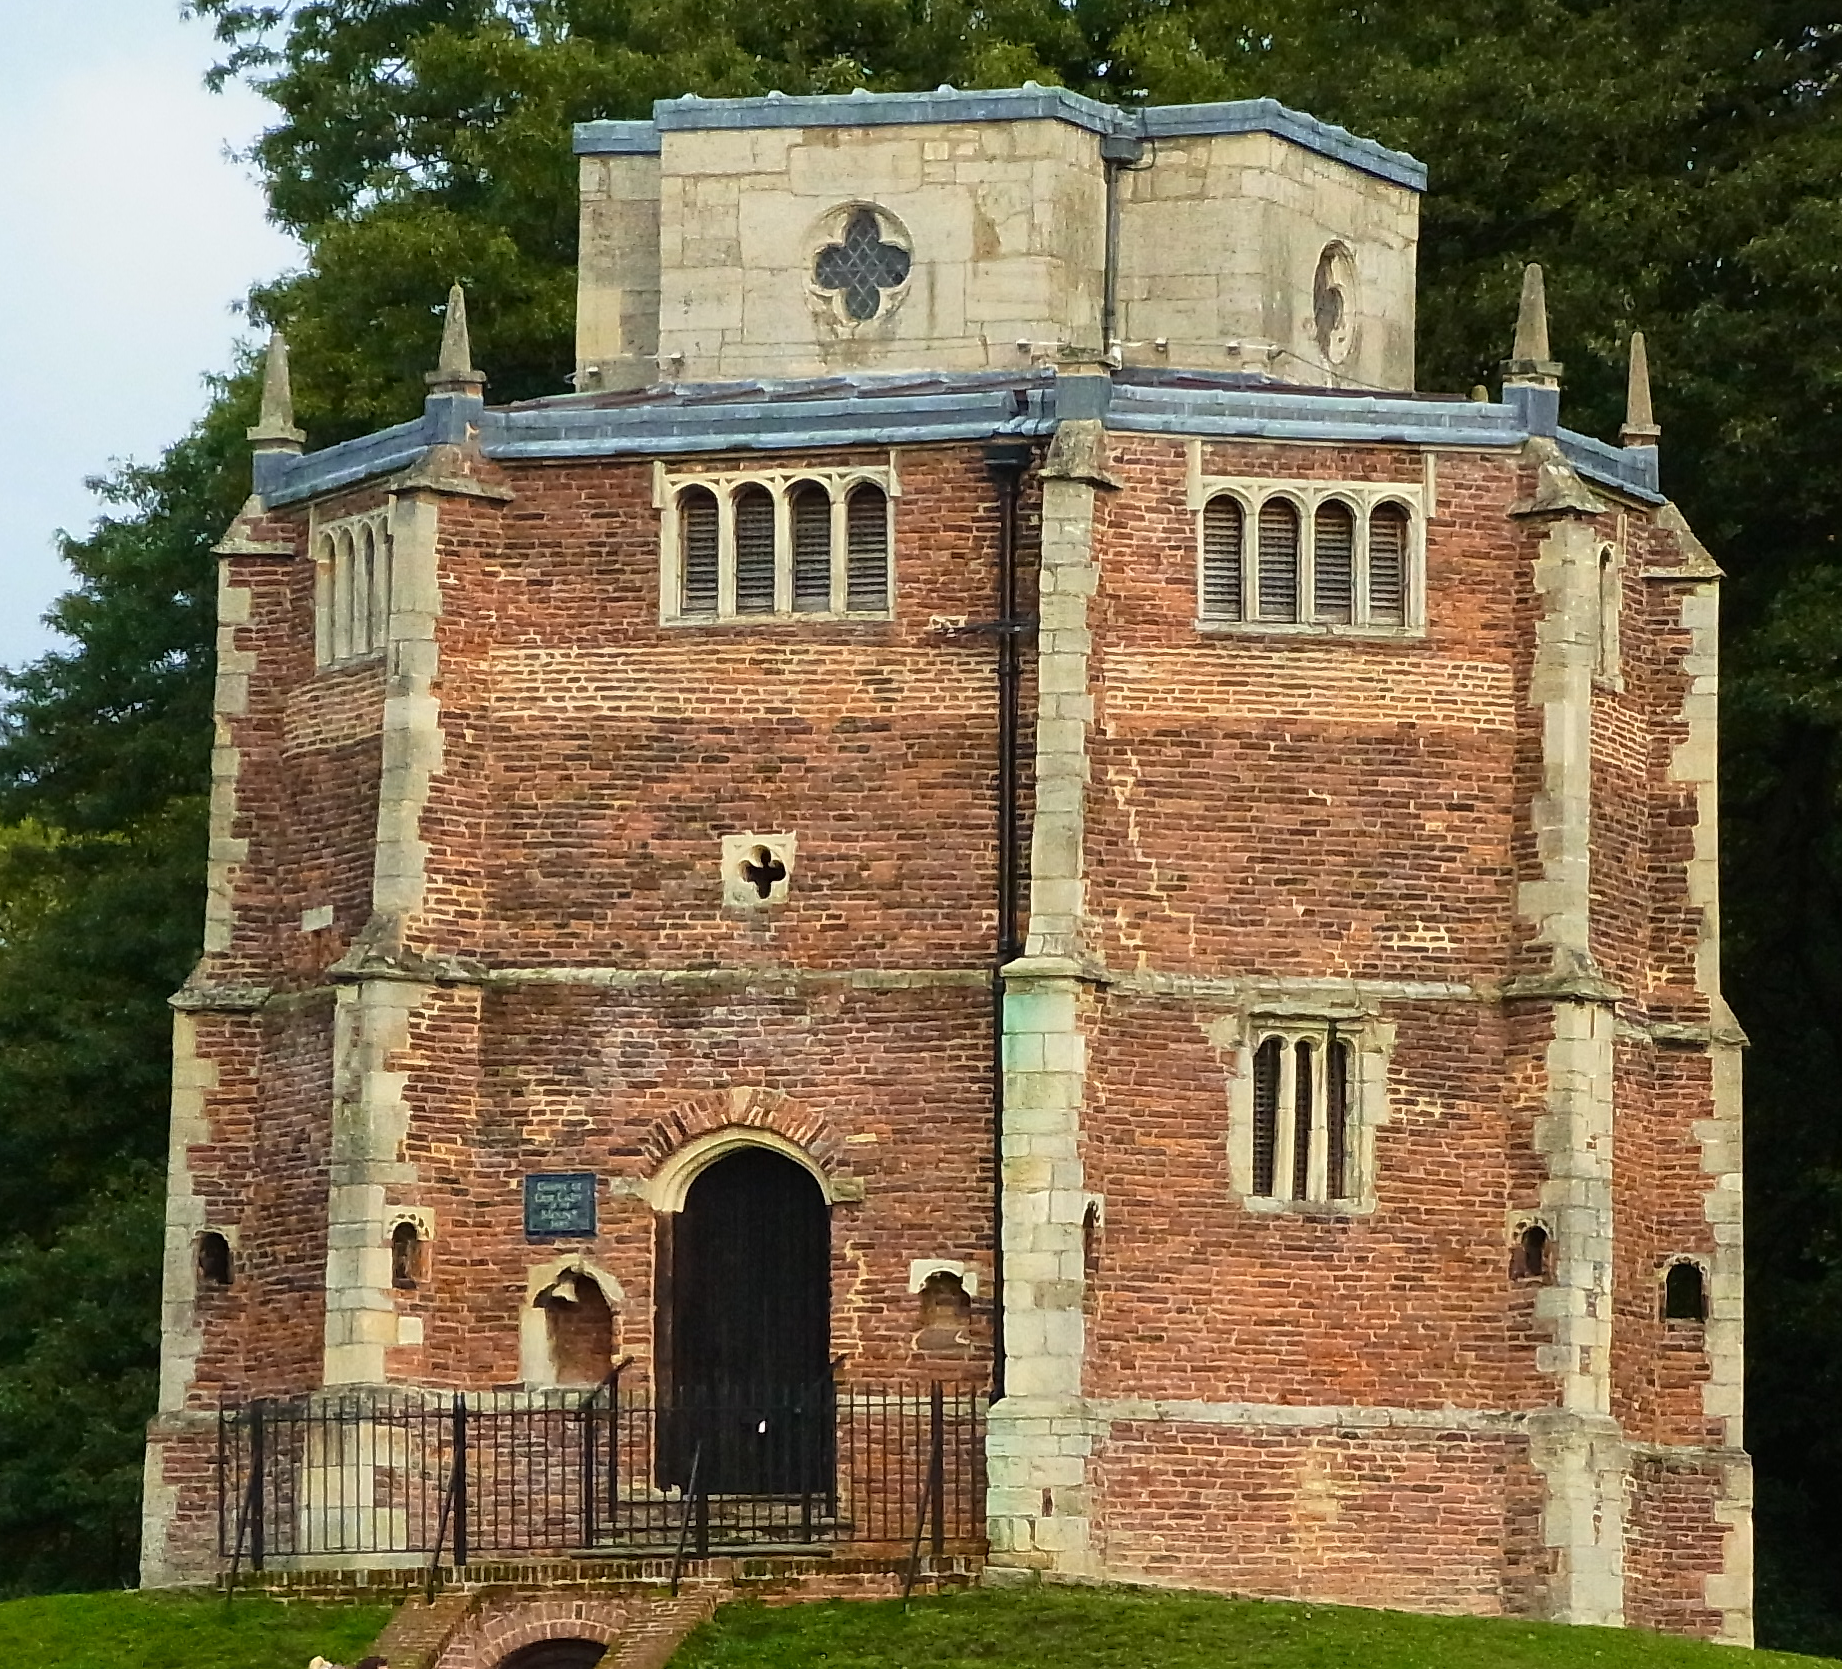 Red Mount Chapel, brick built with limestone 'quoins', marking each corner of the polygon. Stone is also used for window surrounds and top storey.